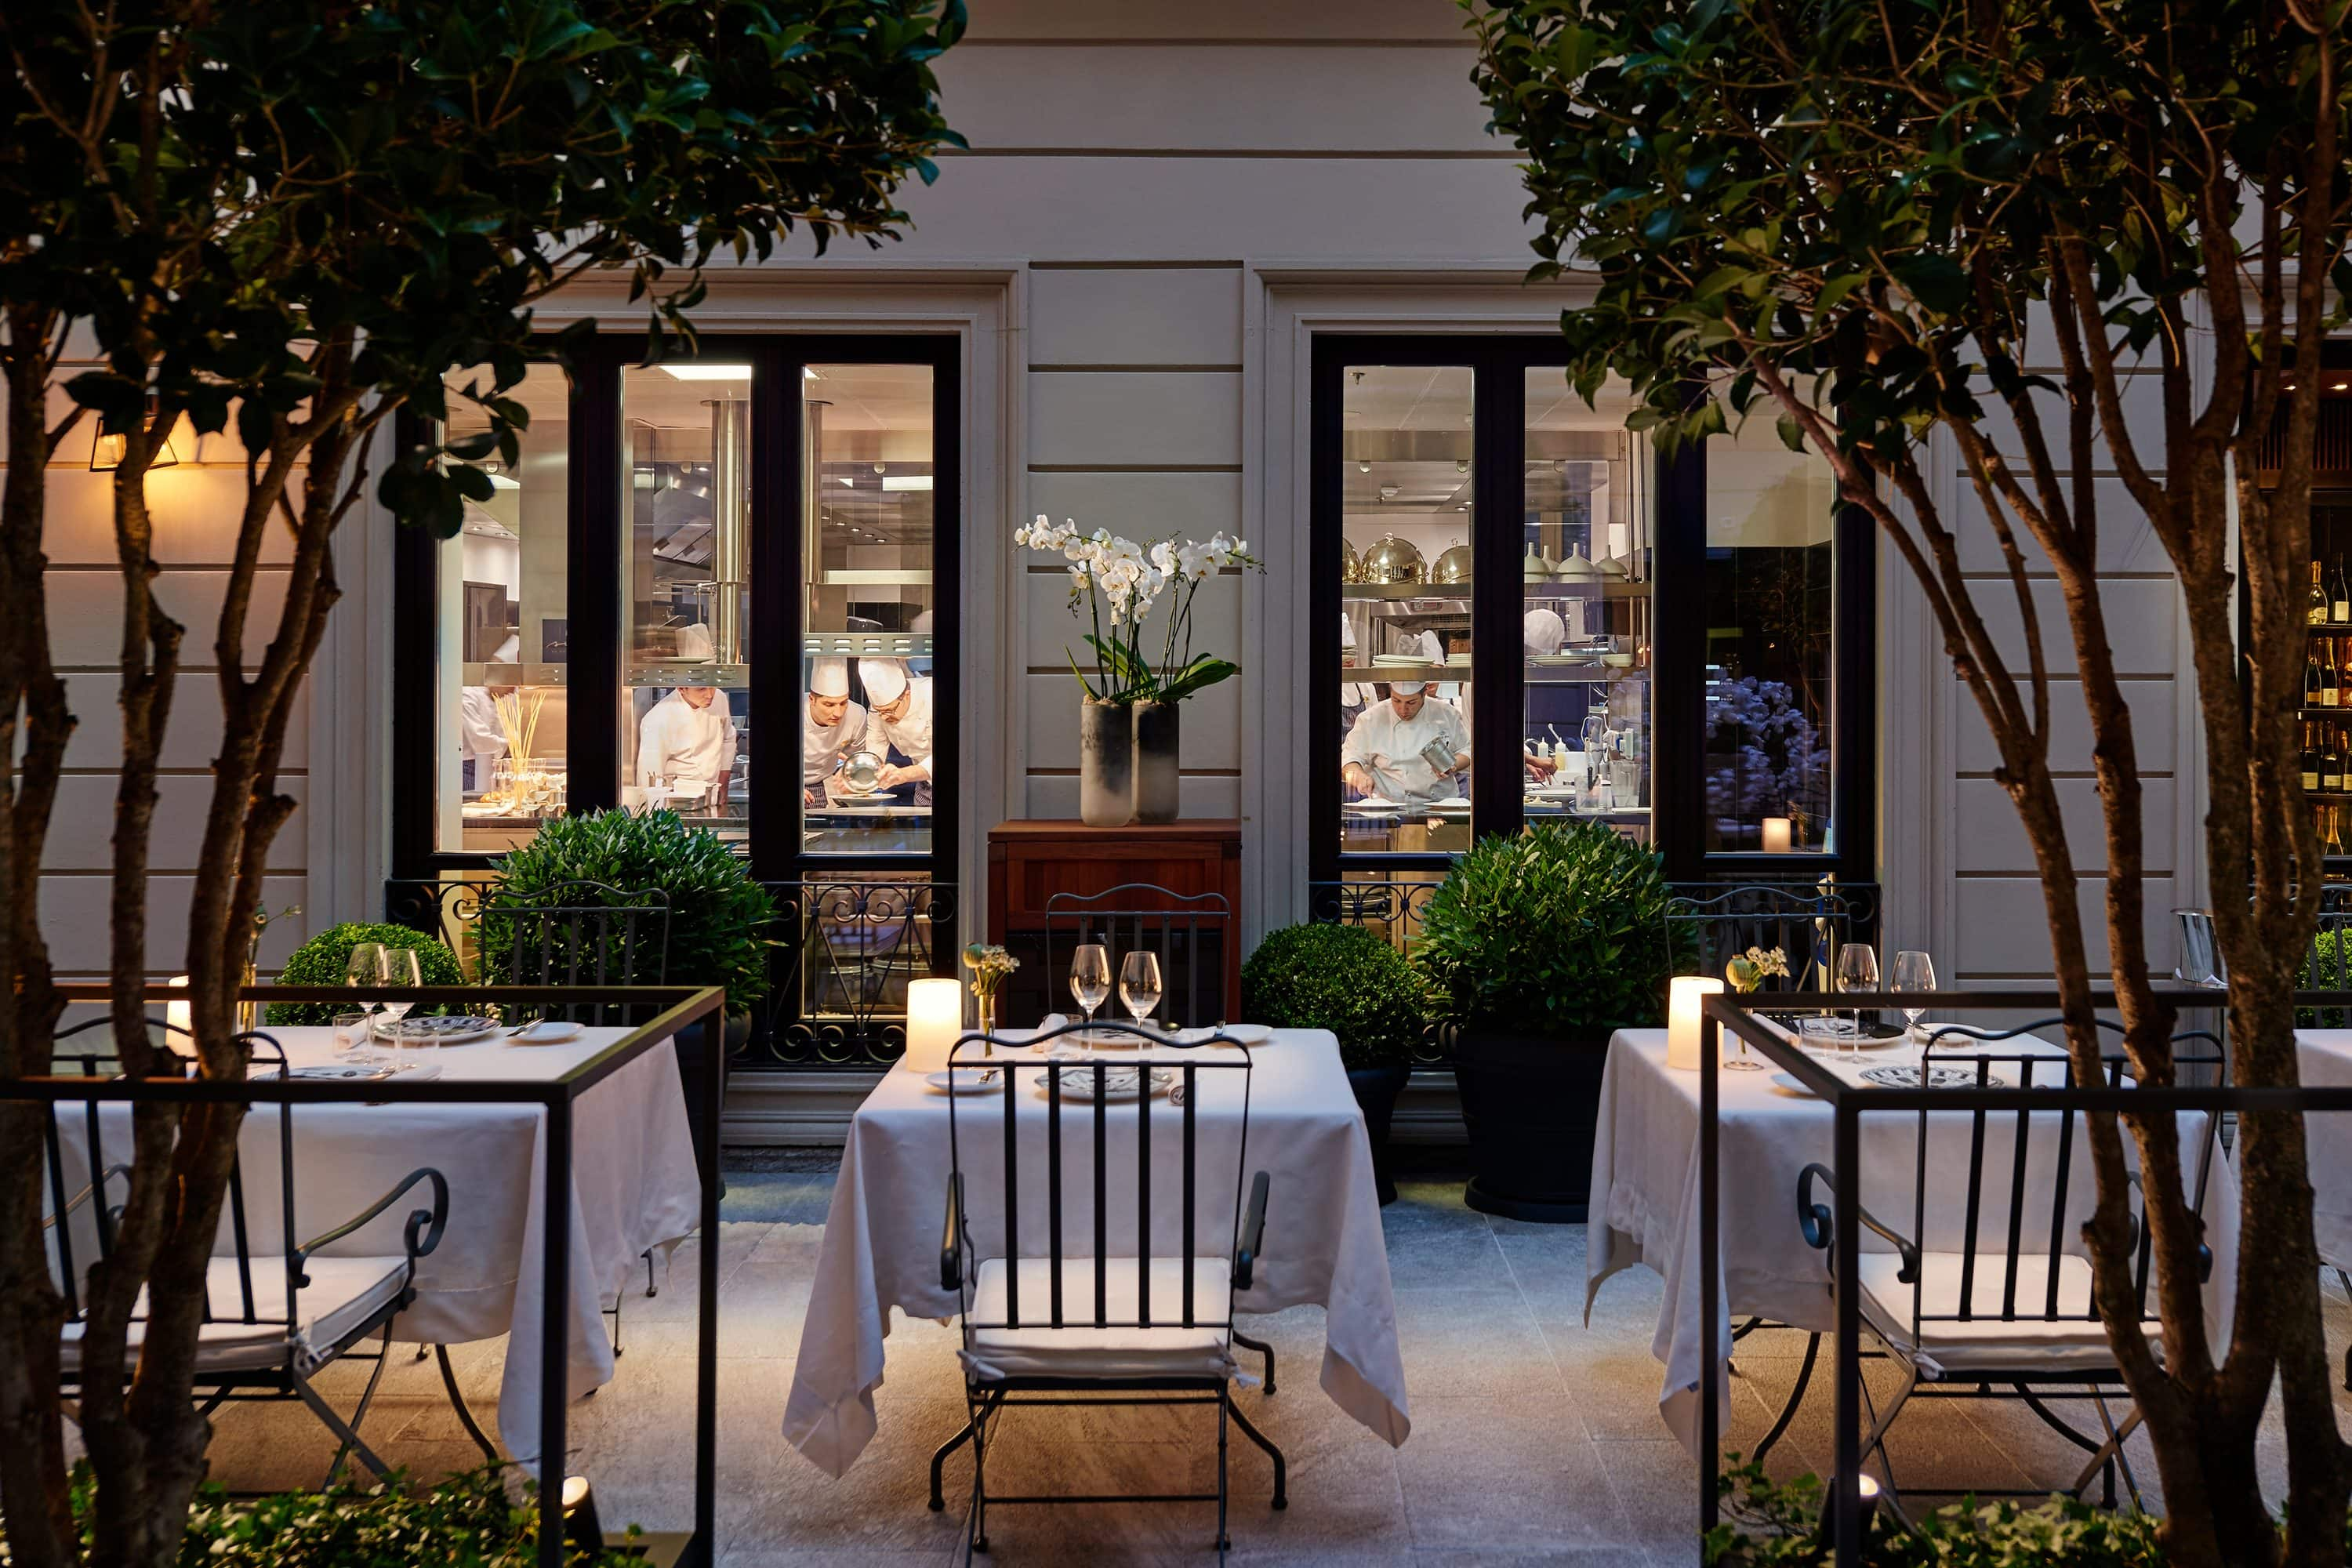 Courtyard with laid tables at Seta restaurant, Milan